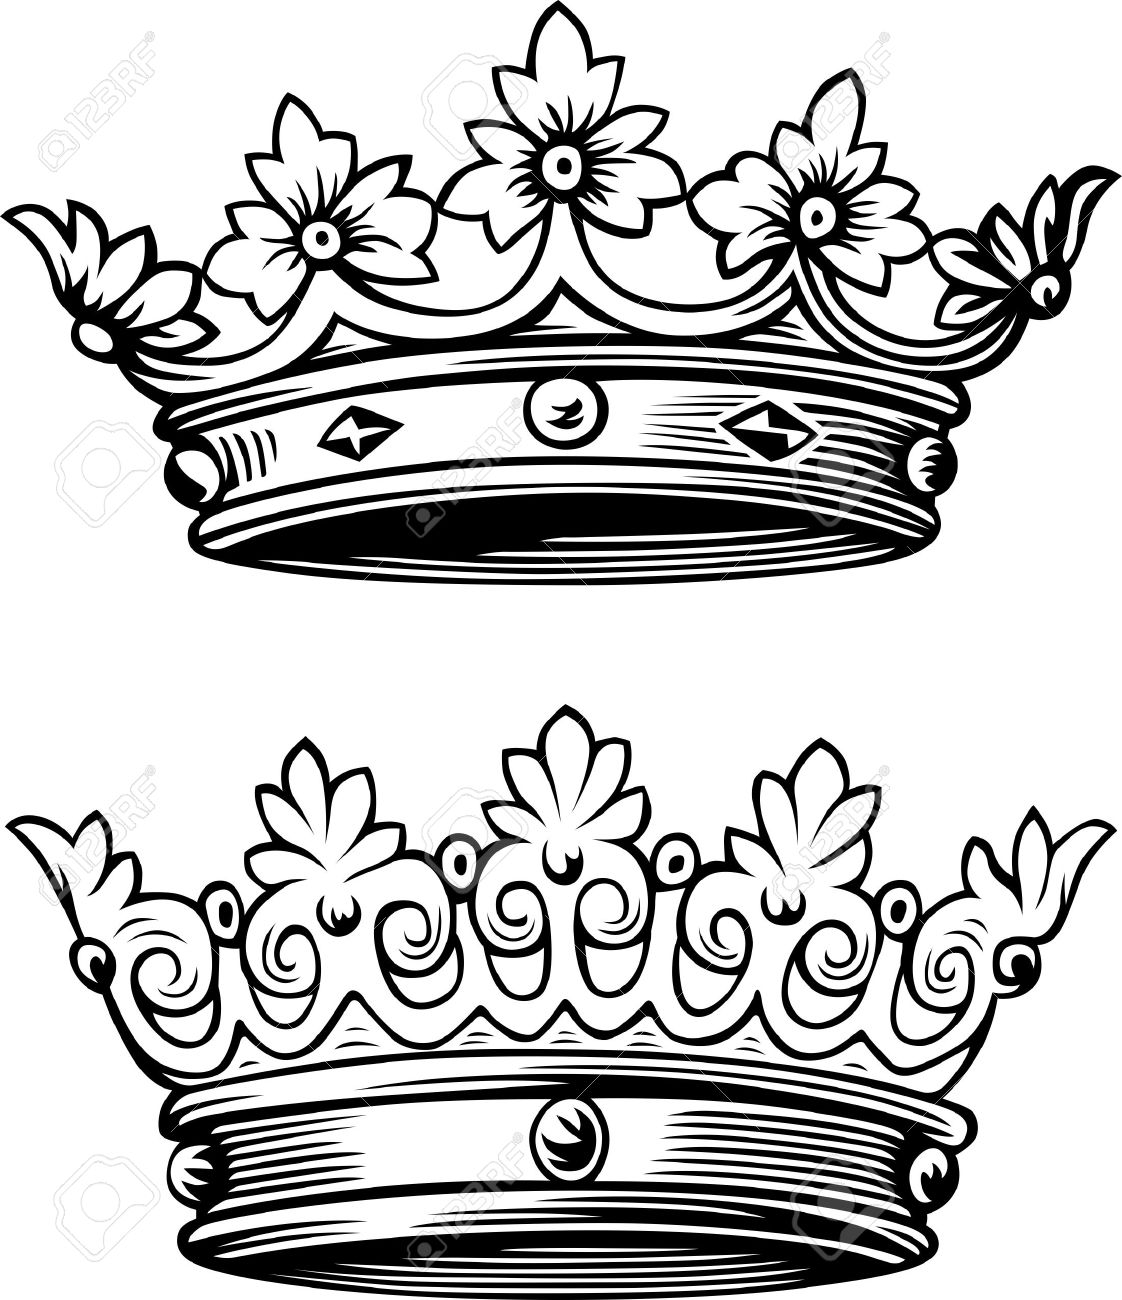 Printable coloring pages kings and queens - Clip Art King Crown Coloring Page King Crown Coloring Page Eassume Com Here Home Princess In